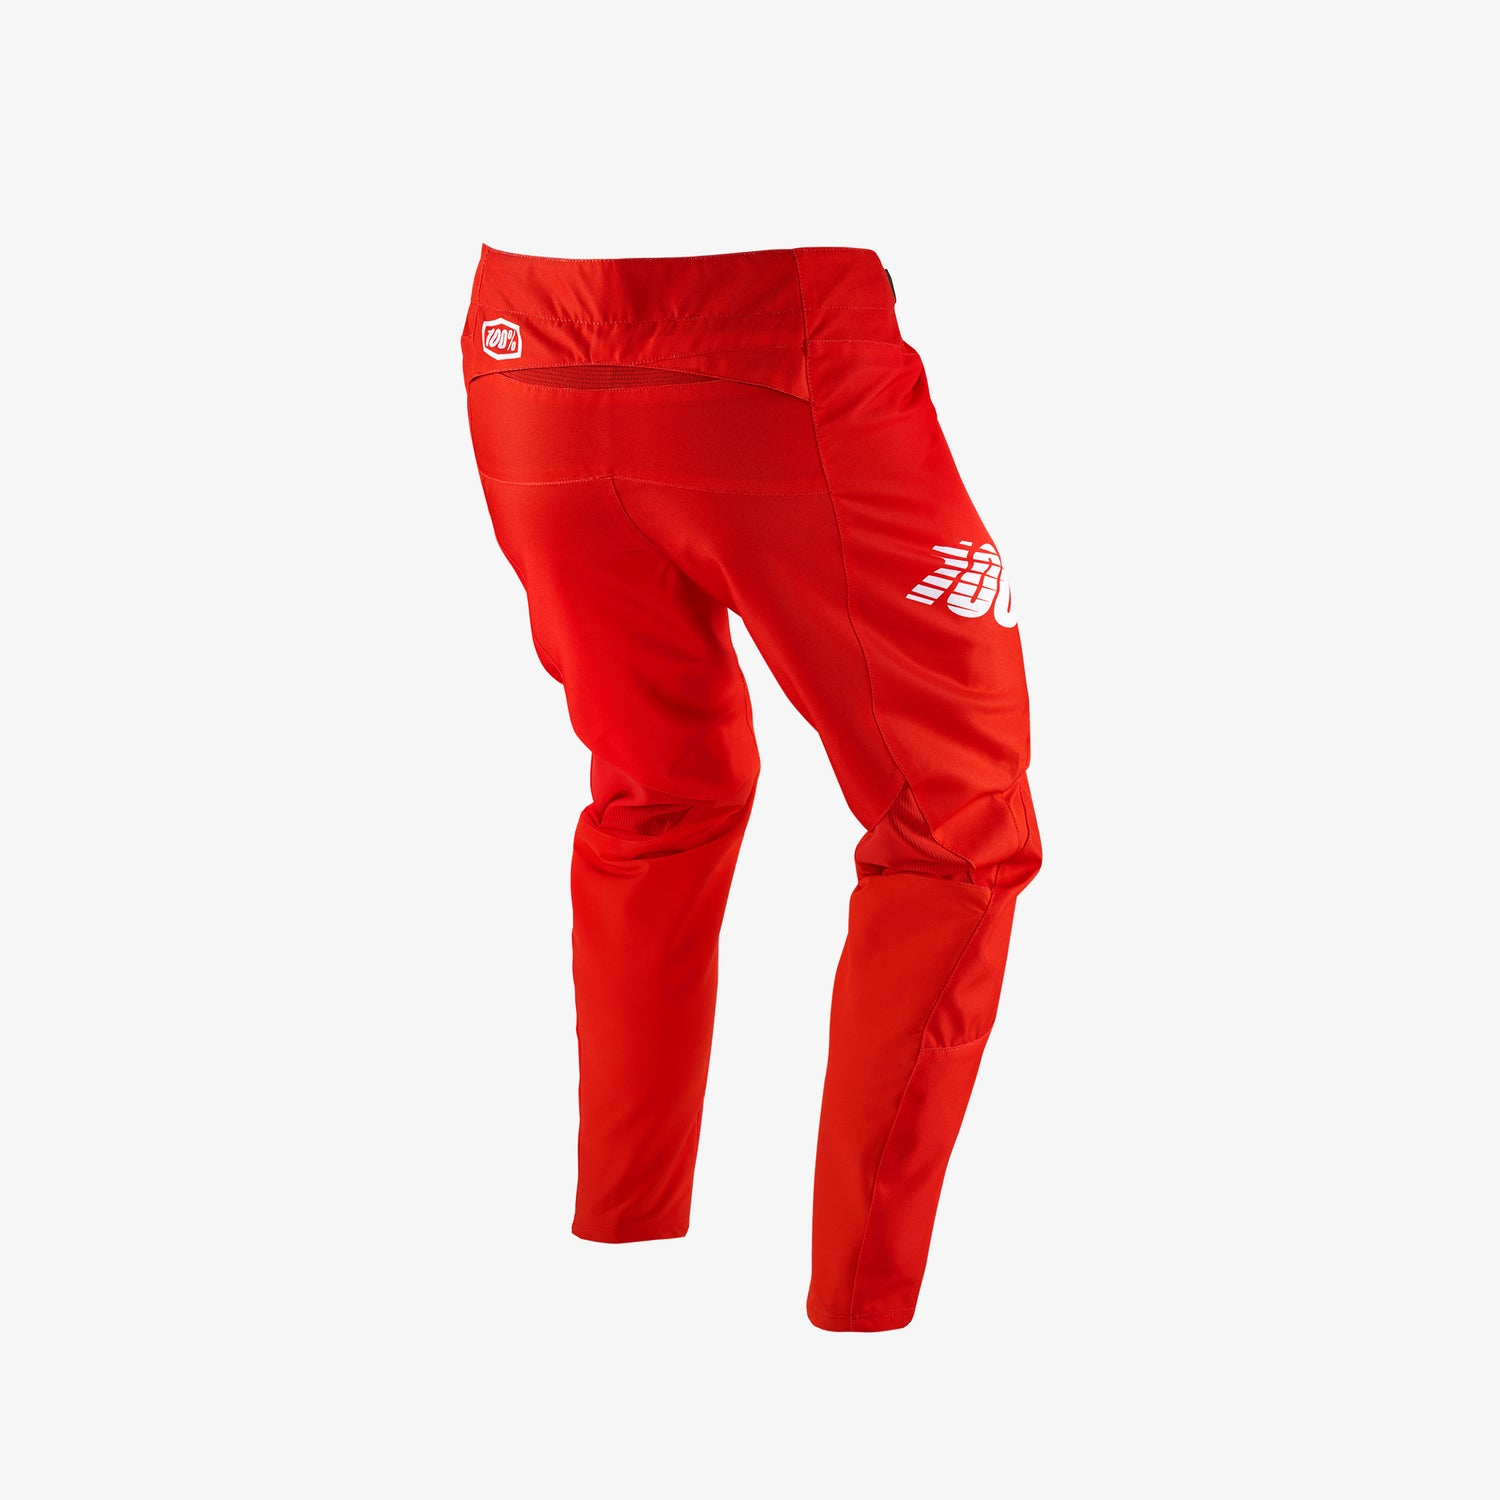 R-CORE DH Pants - Red